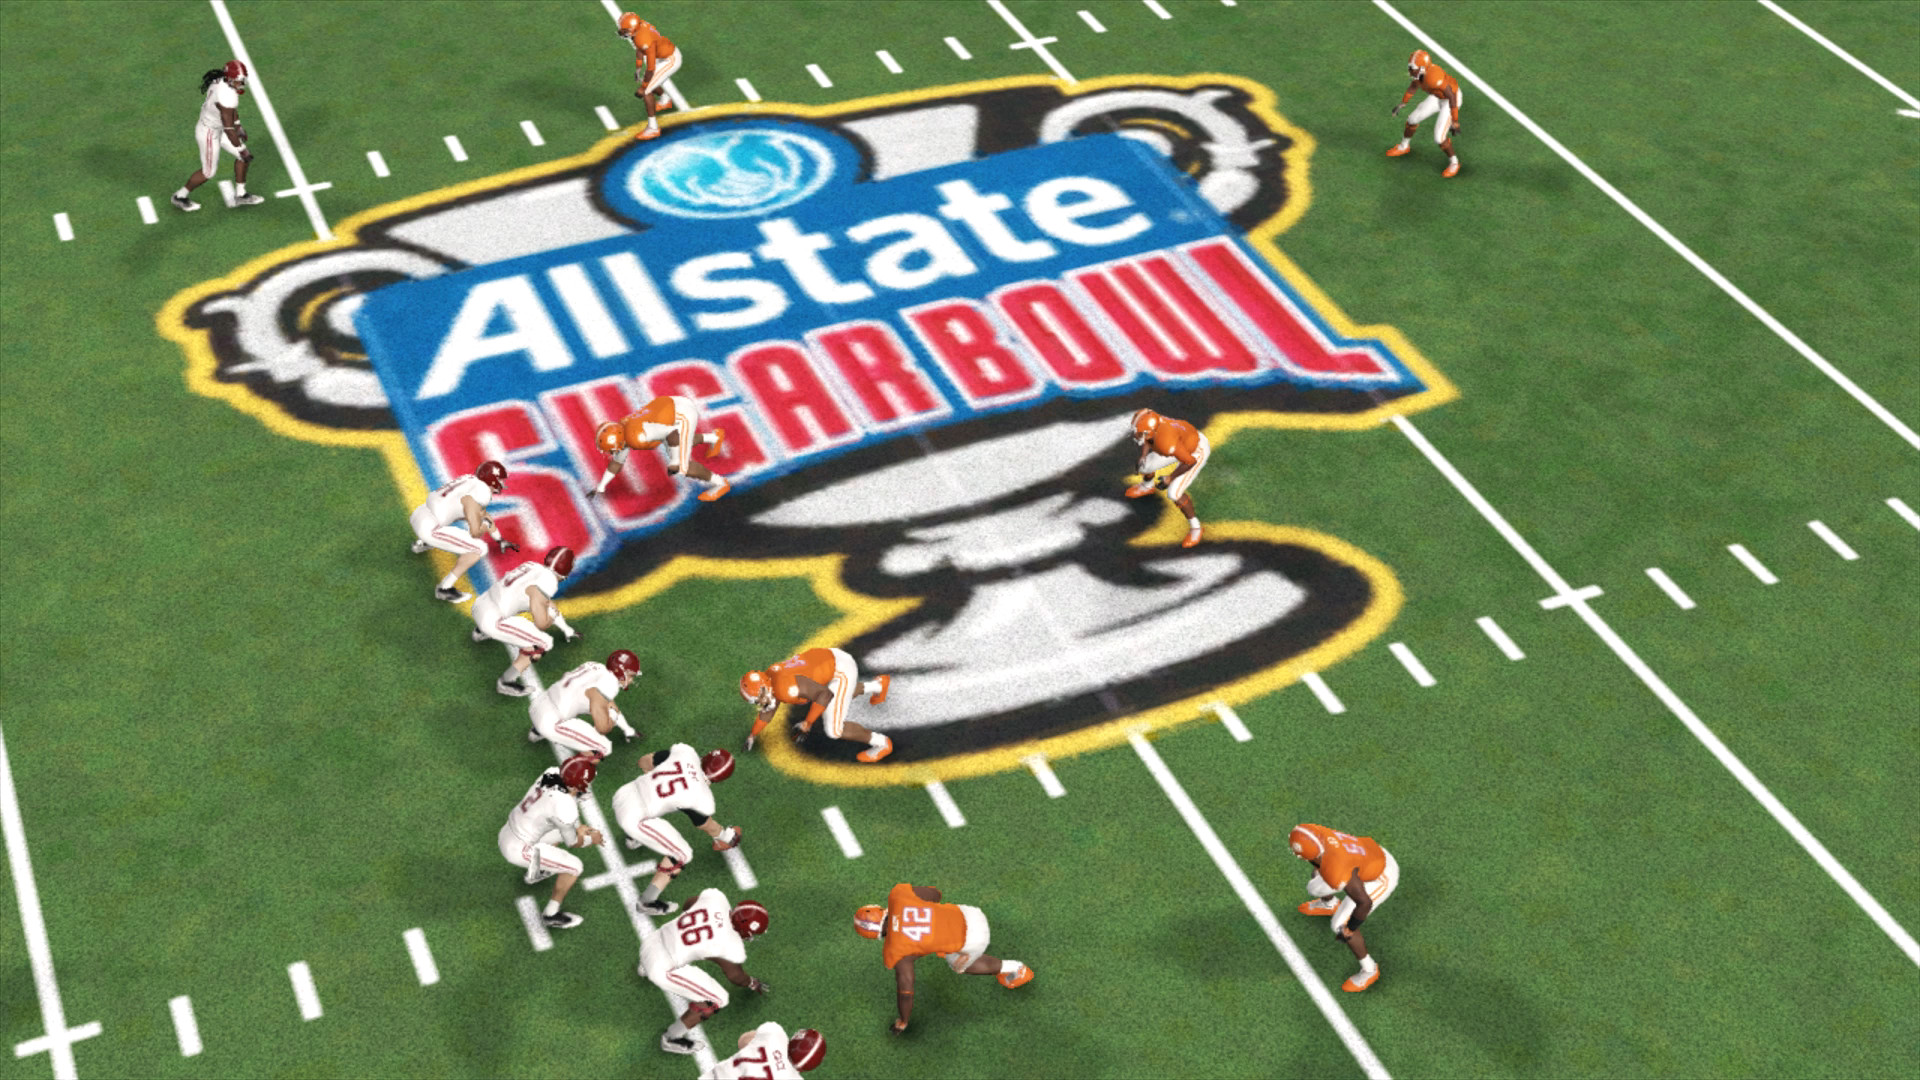 'Bama defeats Clemson 24-6 at Sugar Bowl